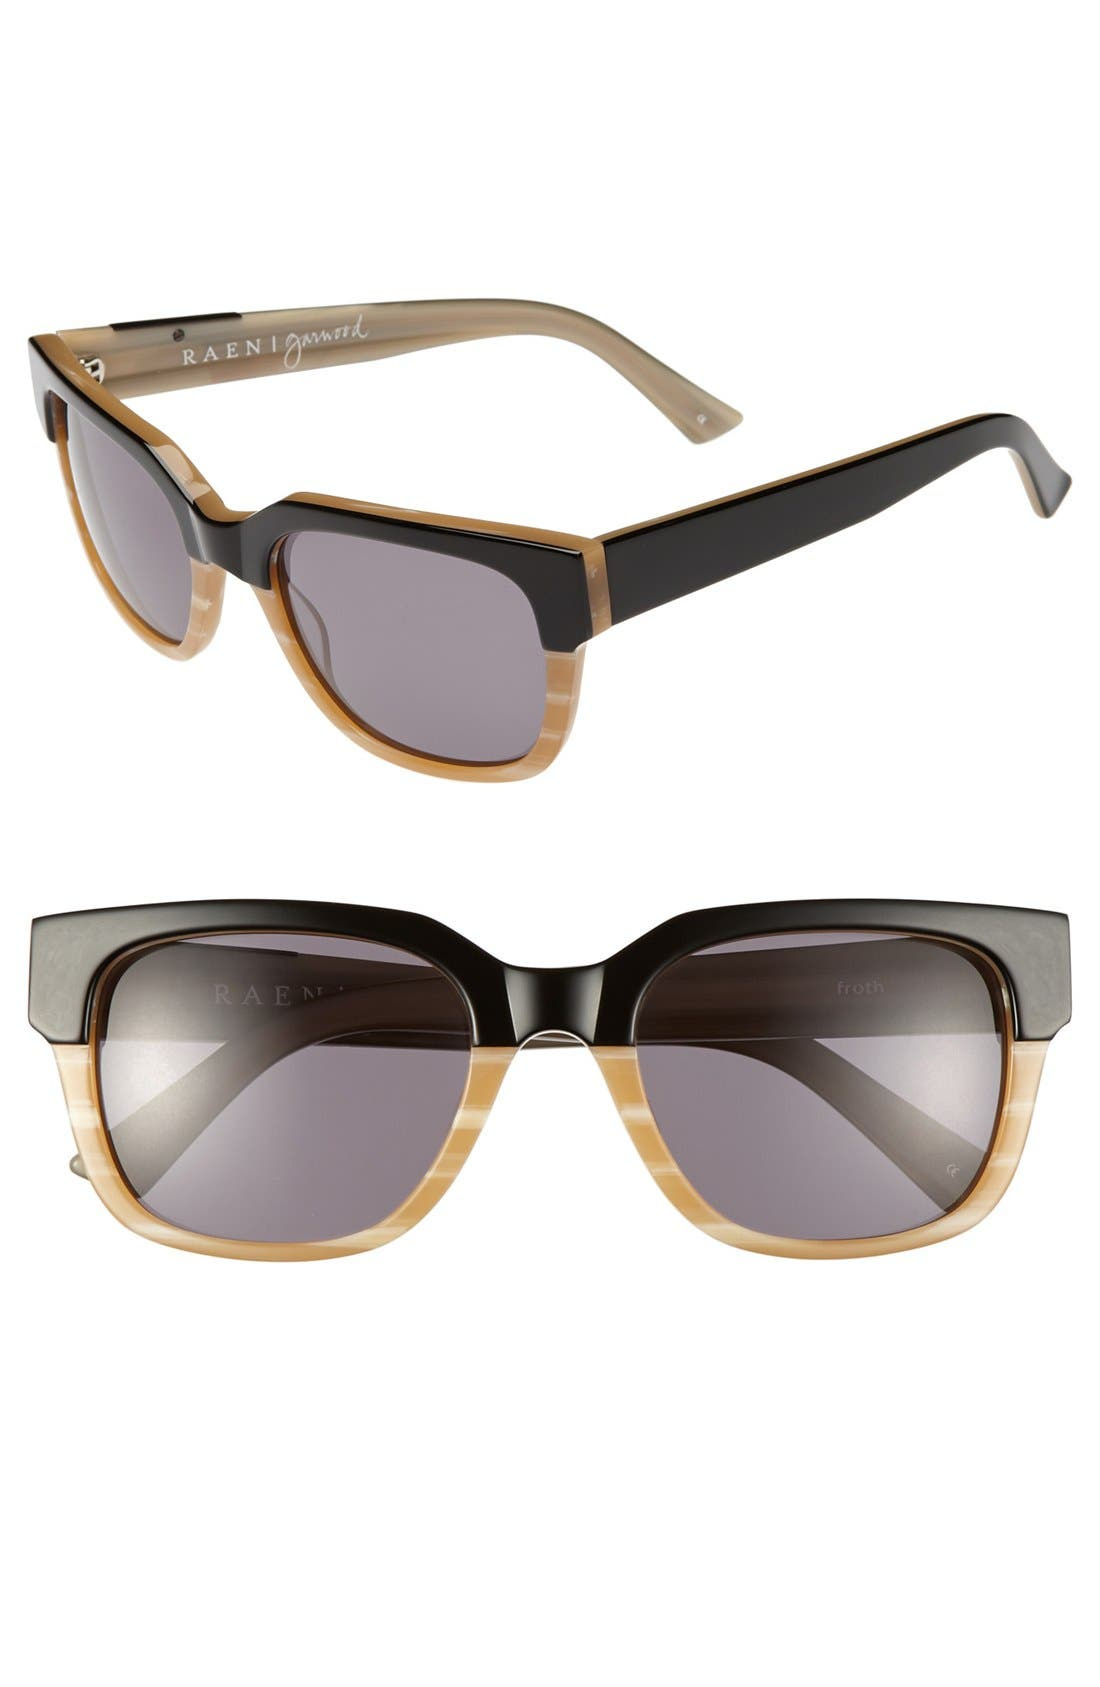 Main Image - RAEN 'Garwood' 54mm Sunglasses